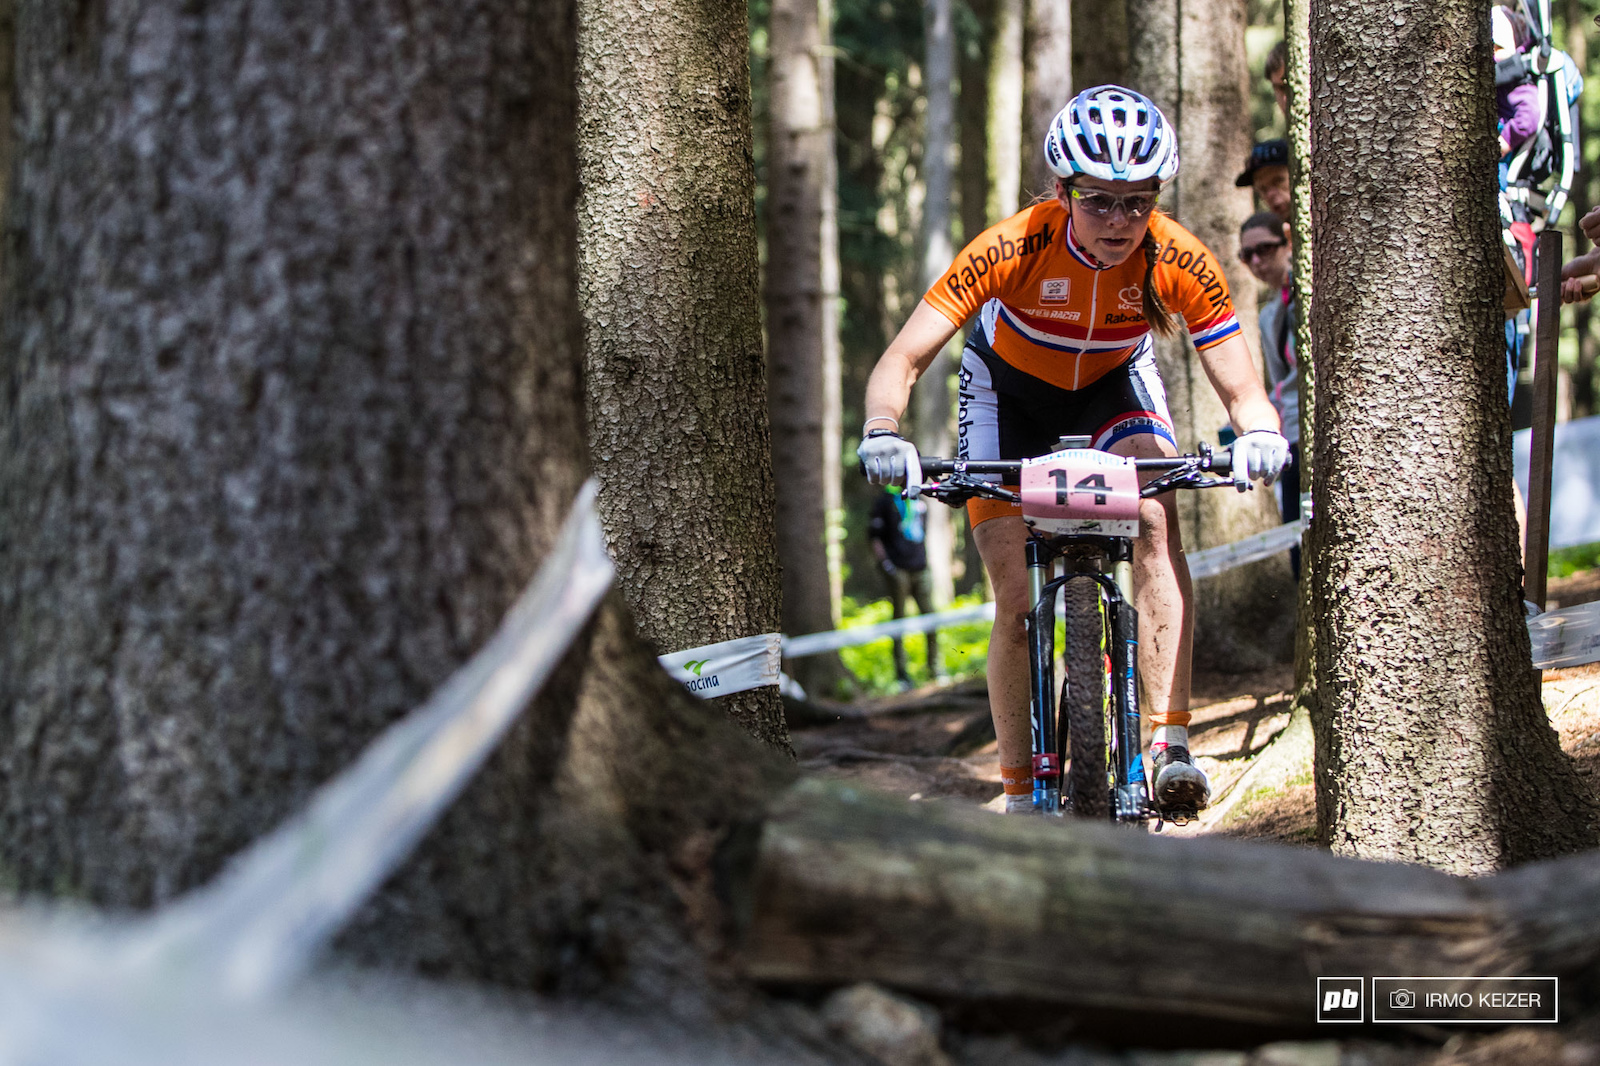 Dutch speedskater Anne Tauber is one to watch for the future. In her first season on the mountainbike she has won two bronze medals in World Cups. In Nove Mesto she finished in 6th despite a crash.